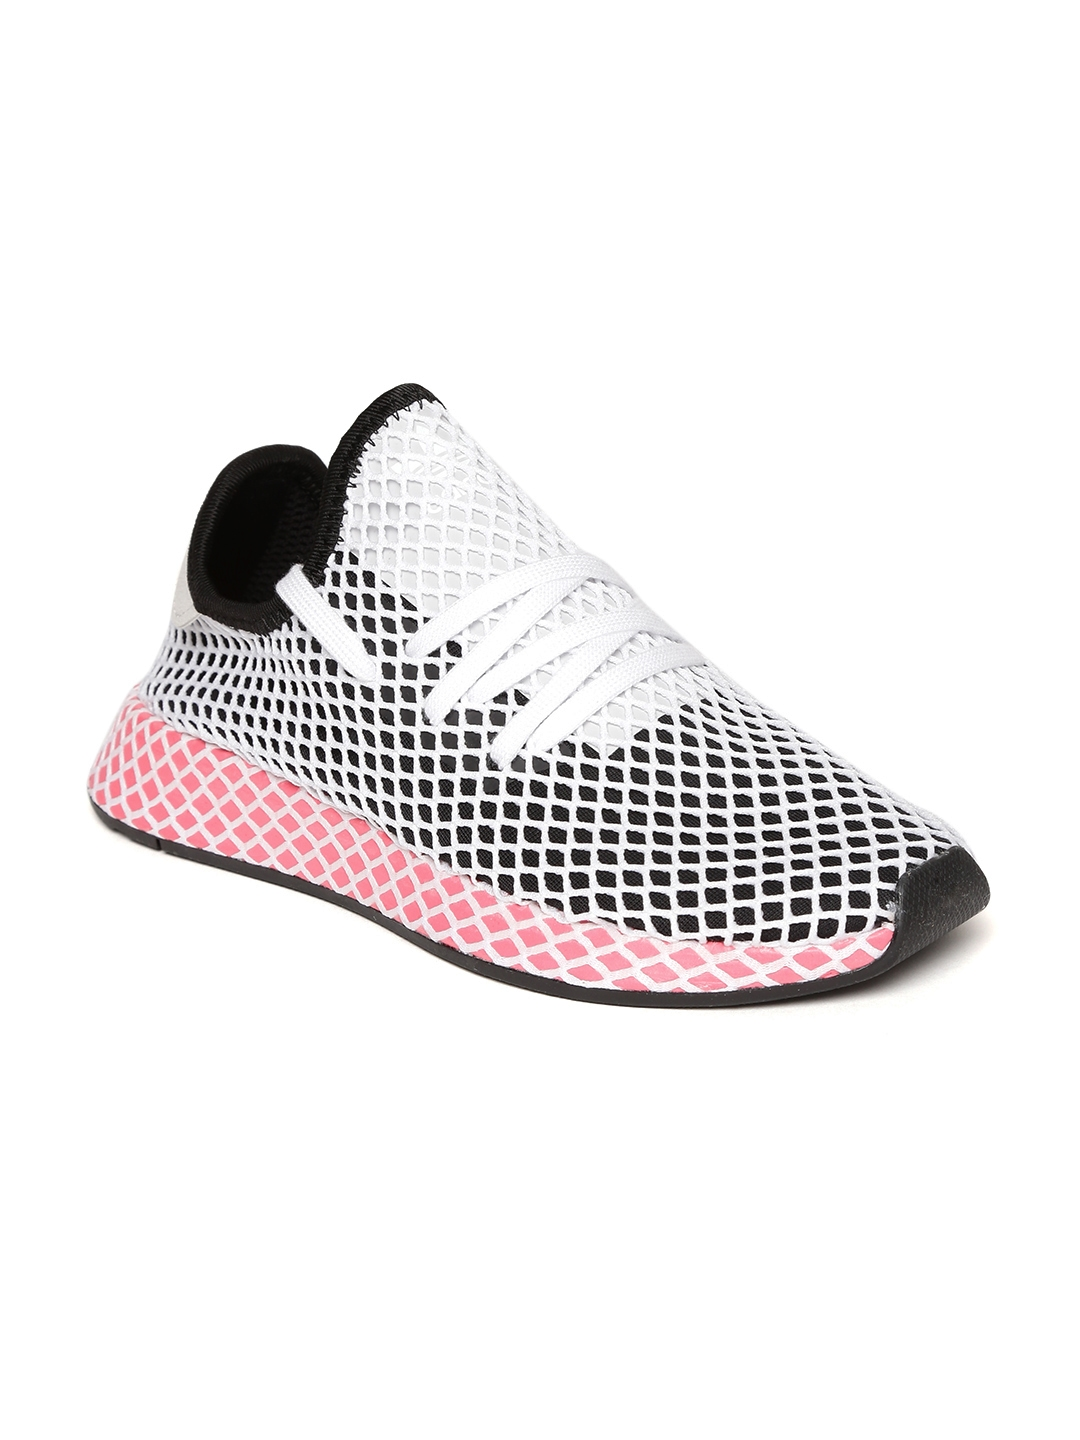 ADIDAS Originals Women Black   White Deerupt Runner Patterned Sneakers 7a5575ce33